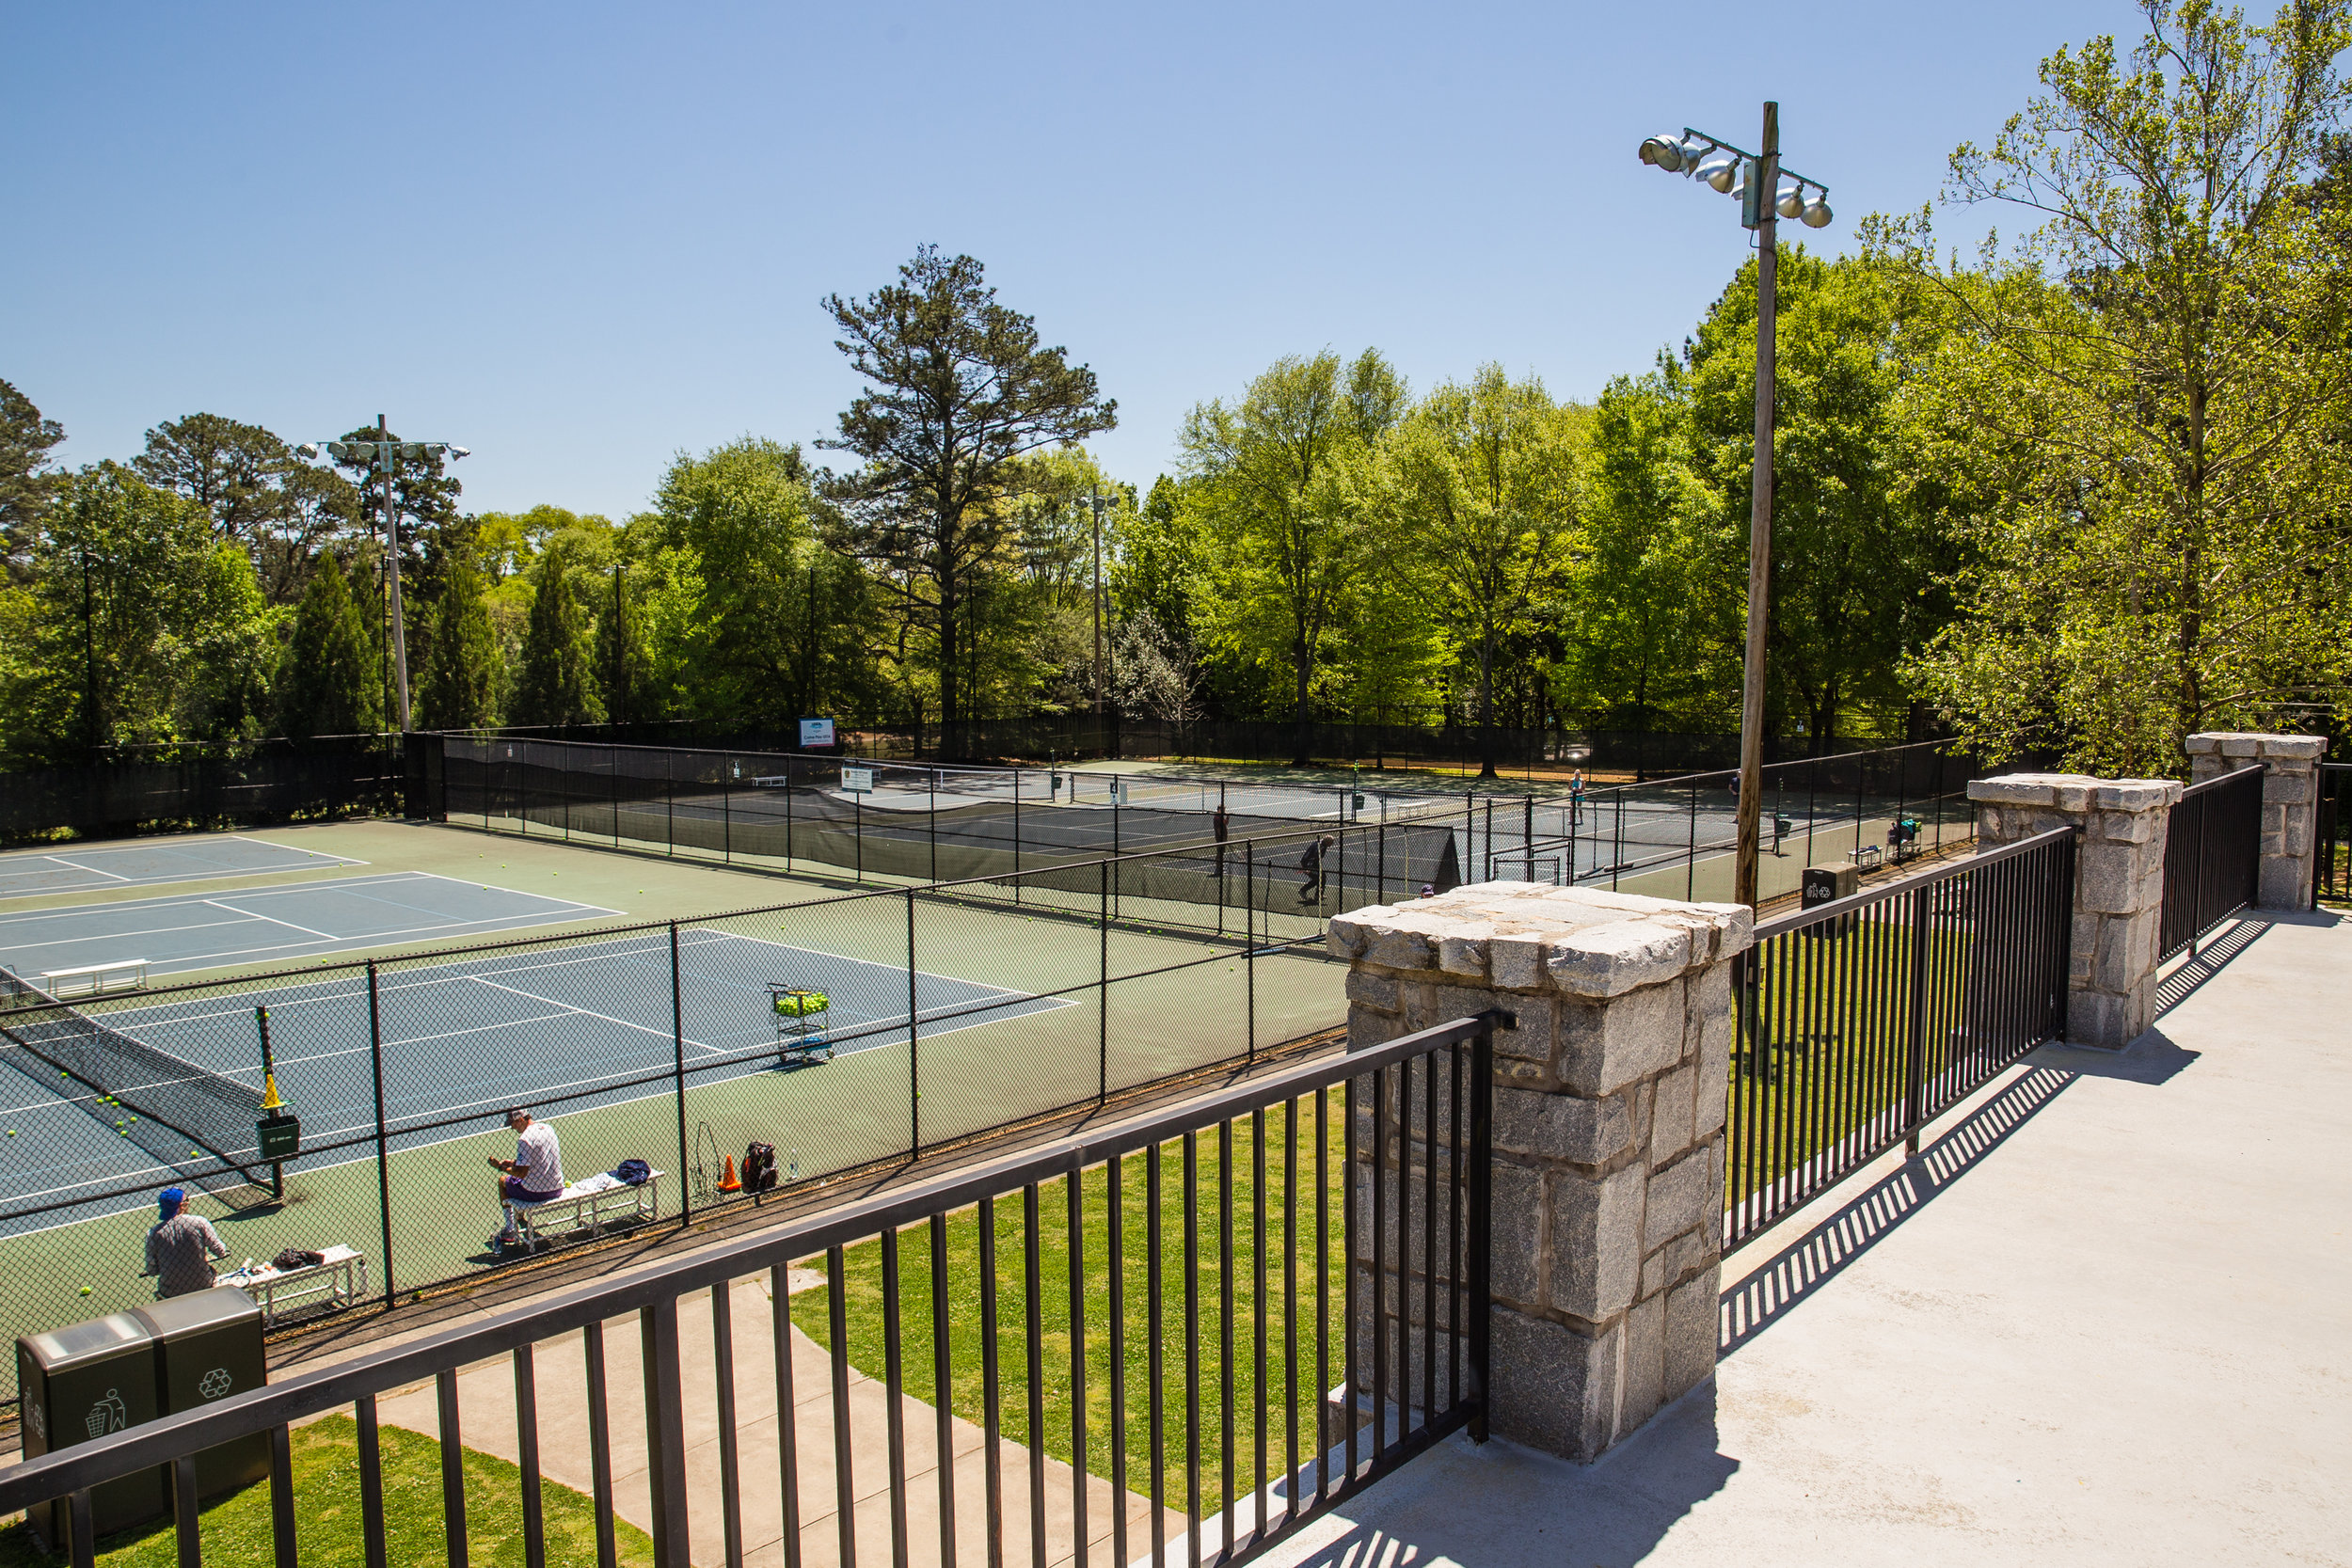 Chastain Tennis Center - ClientCity of Atlanta Parks & RecreationLocationAtlanta, GAContract Value$1.06 millionCompletion DateJune 2010Brief Project DescriptionAstra Group worked with the City of Atlanta to design and build a new tennis center and renovate 12 tennis courts. The project involved the demolition of the existing tennis center, earthwork, infrastructure improvements including underground detention and landscaping. In addition, a new Earthcraft certified new tennis center was constructed